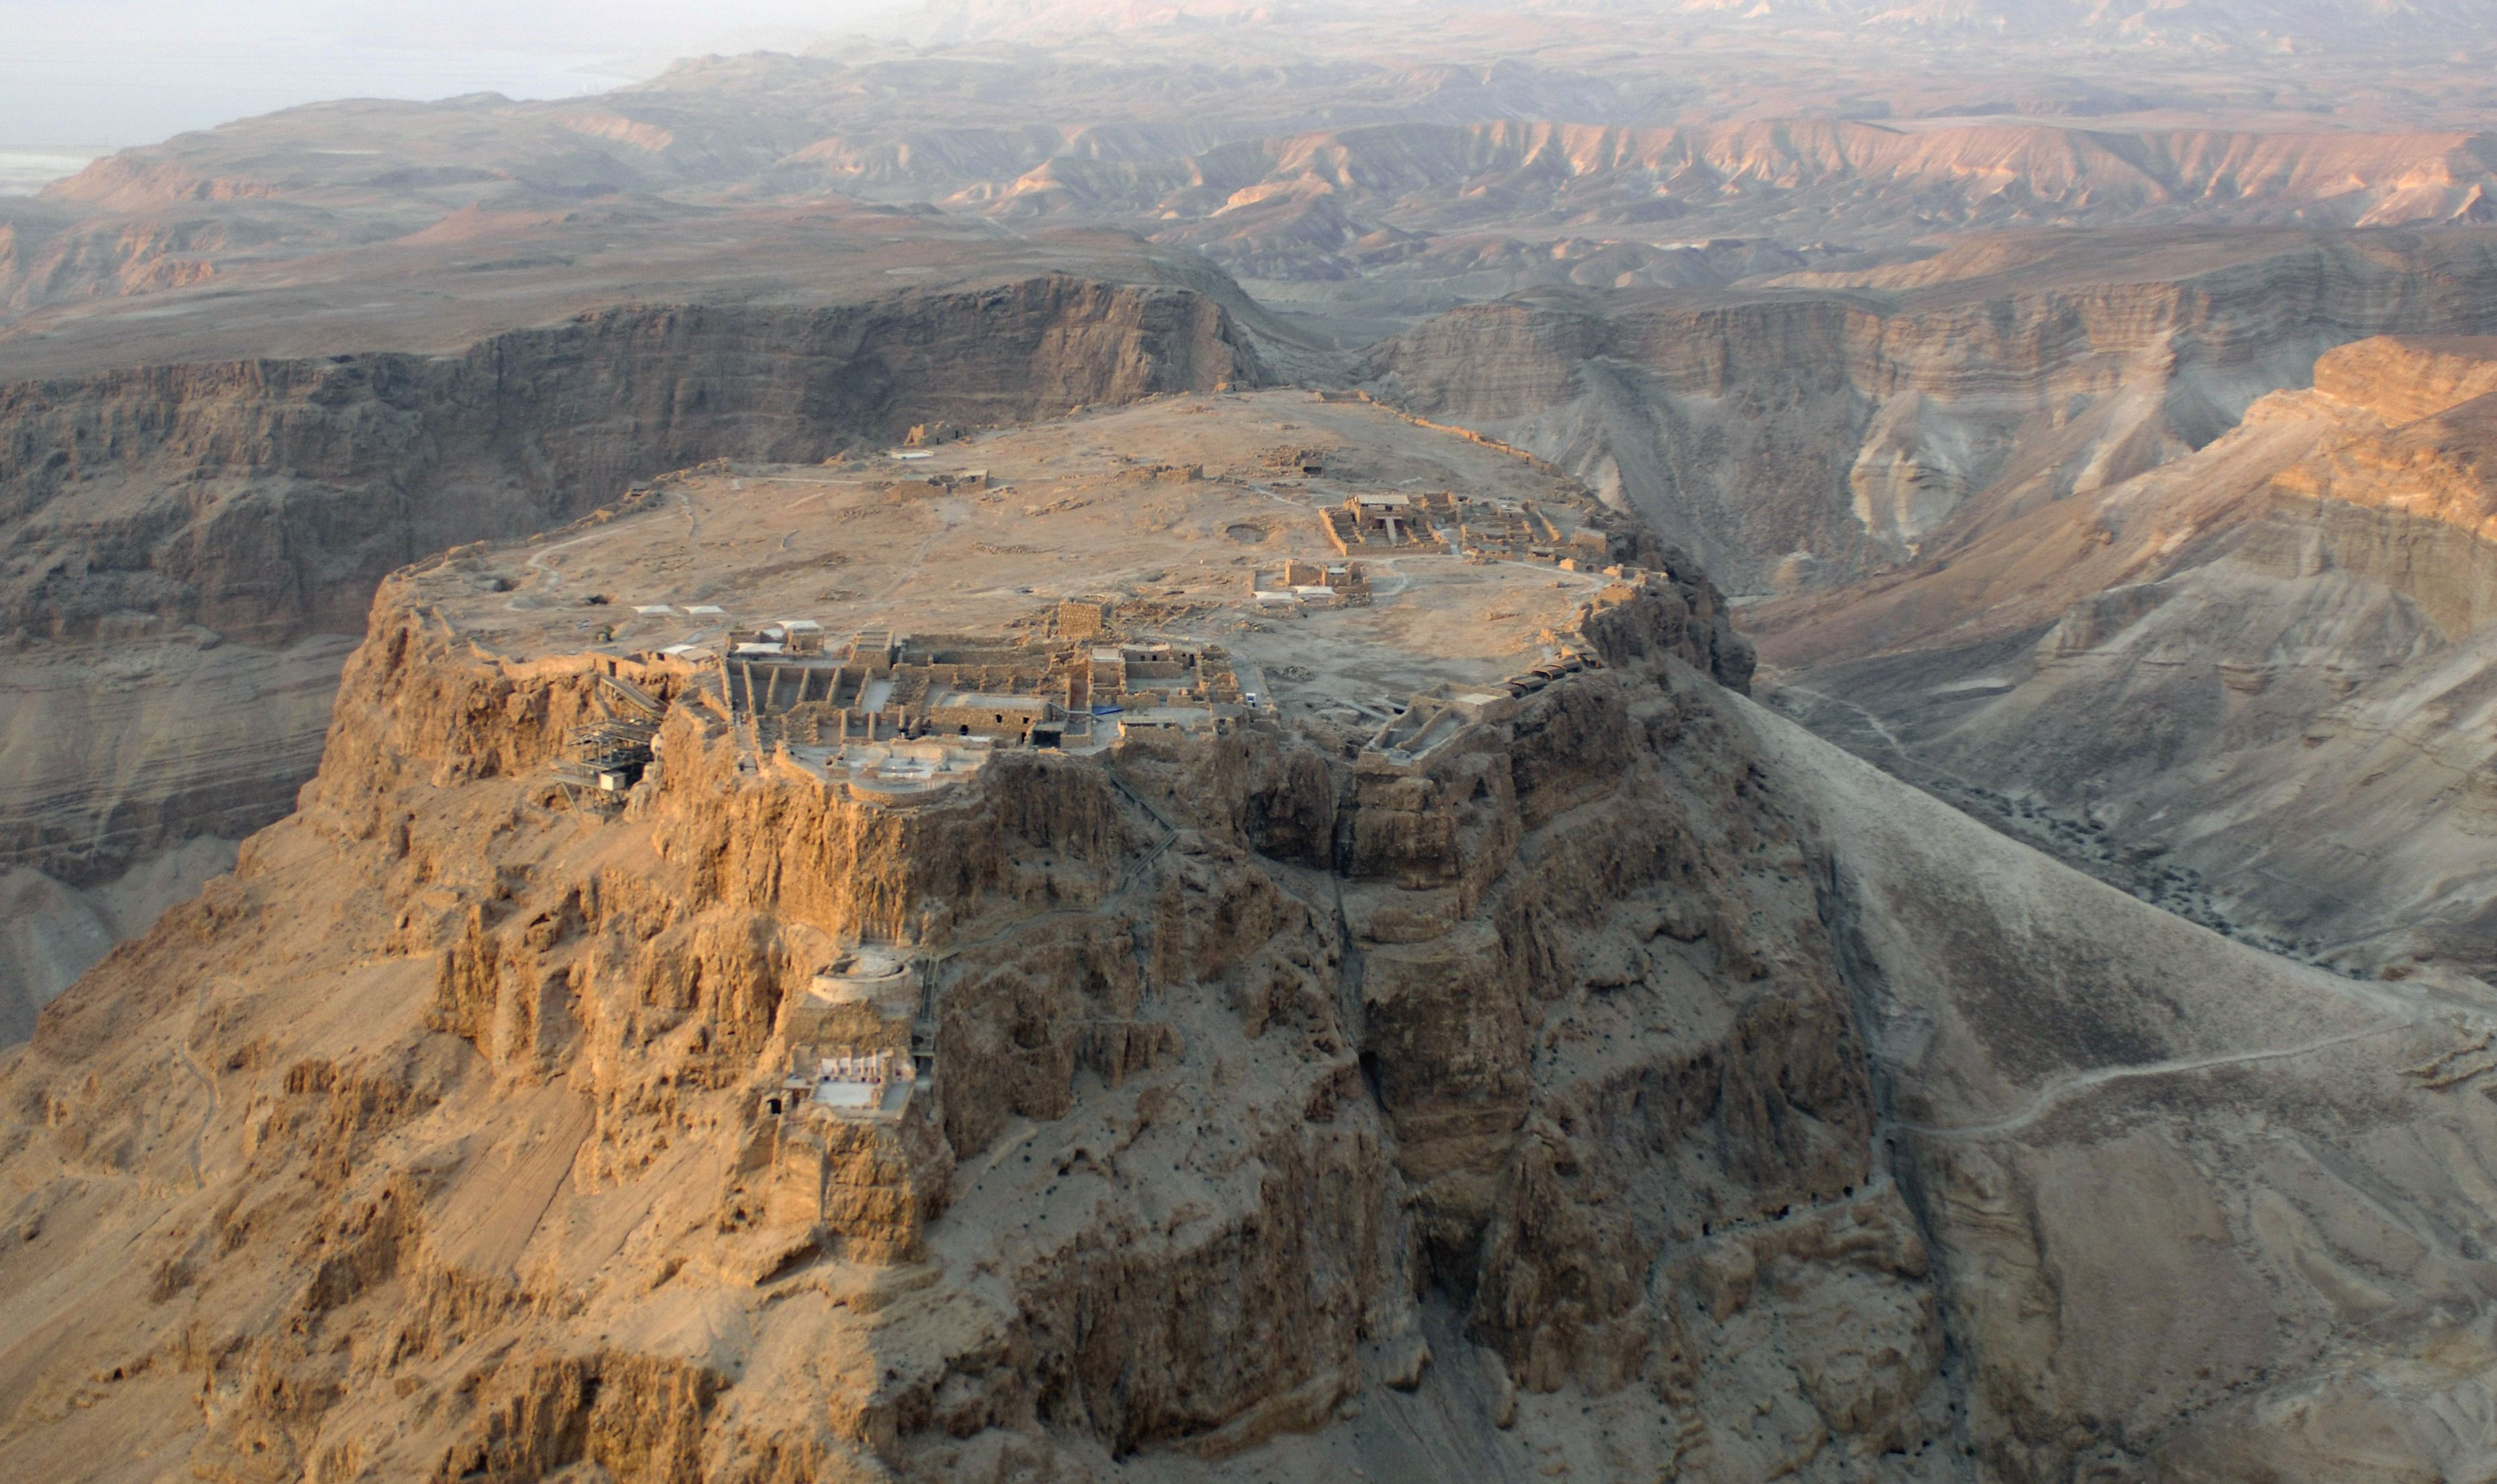 Masada, the ancient Israeli fortress overlooking the Dead Sea.